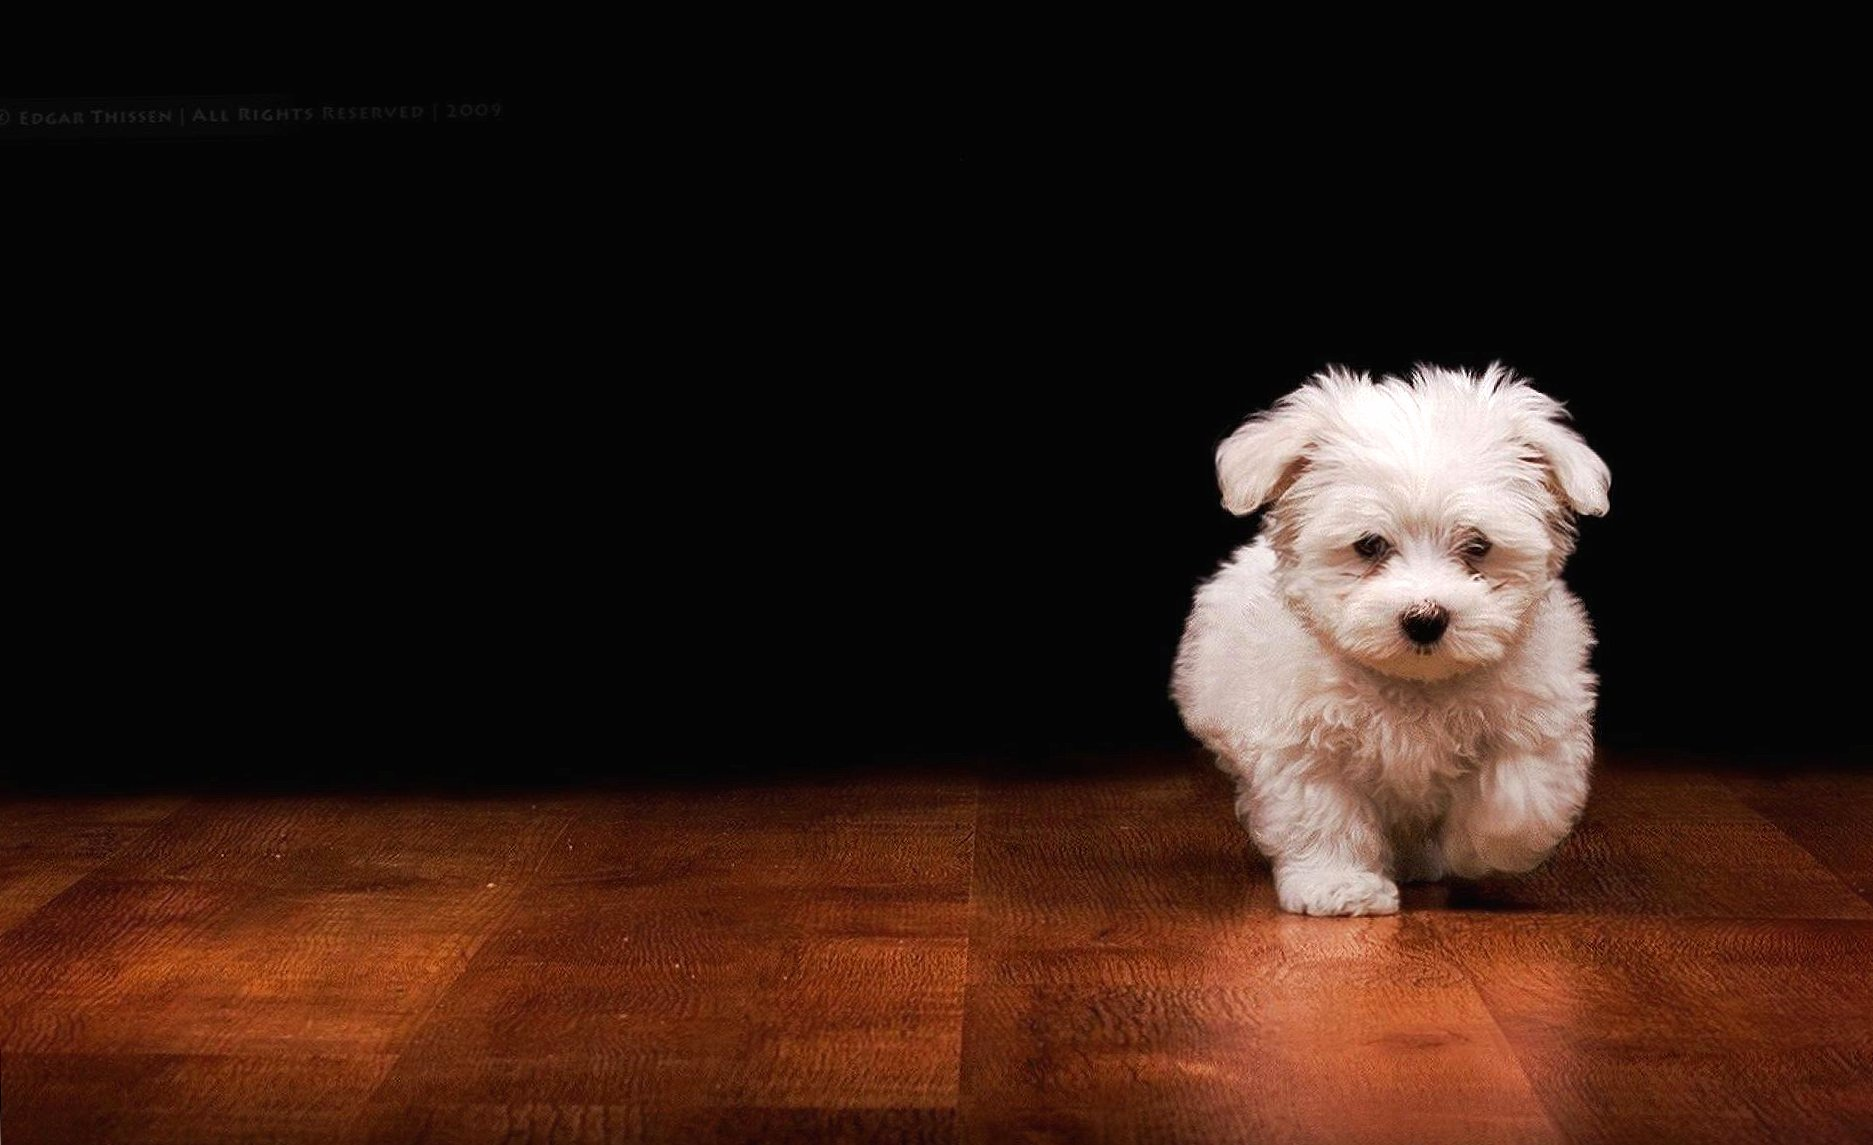 White dog wallpapers HD quality